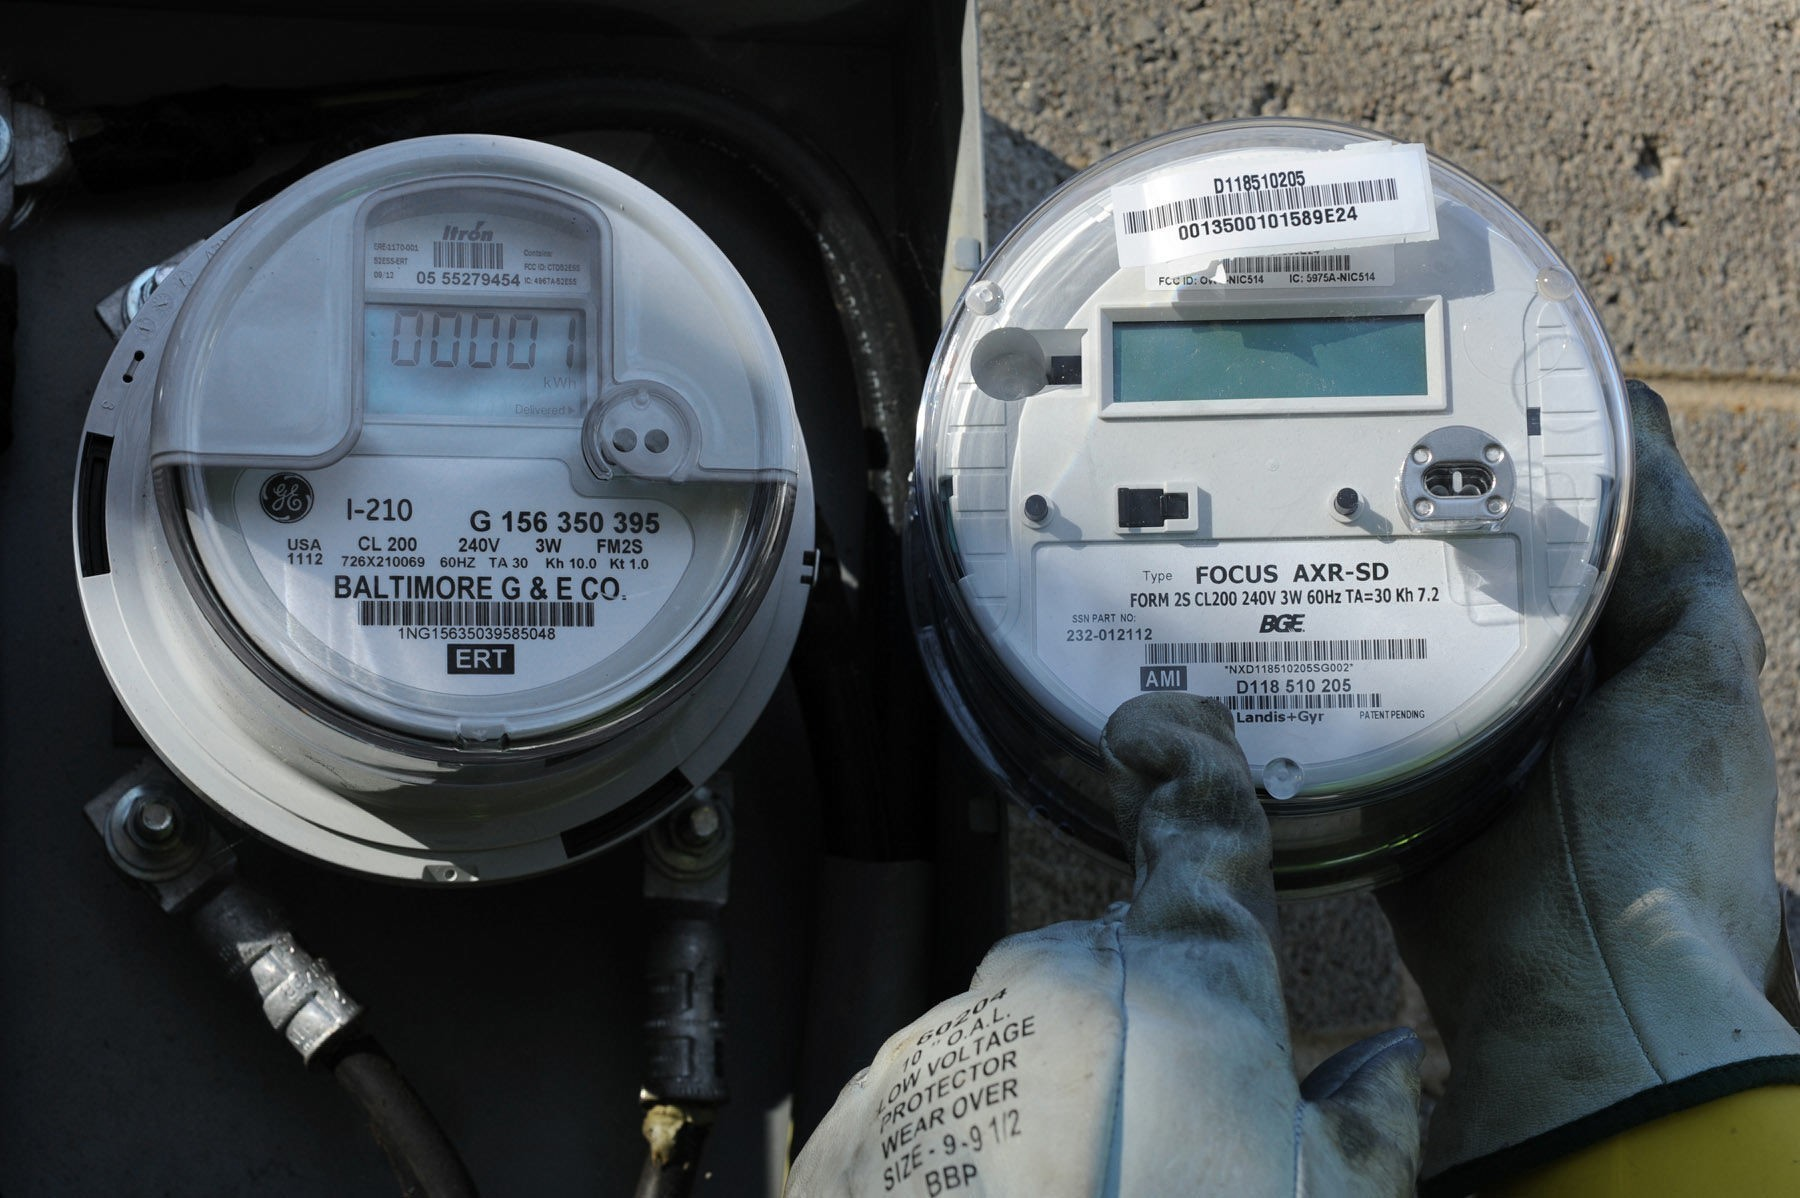 Install Utility Meters : Those ignoring bge requests to install smart meters will